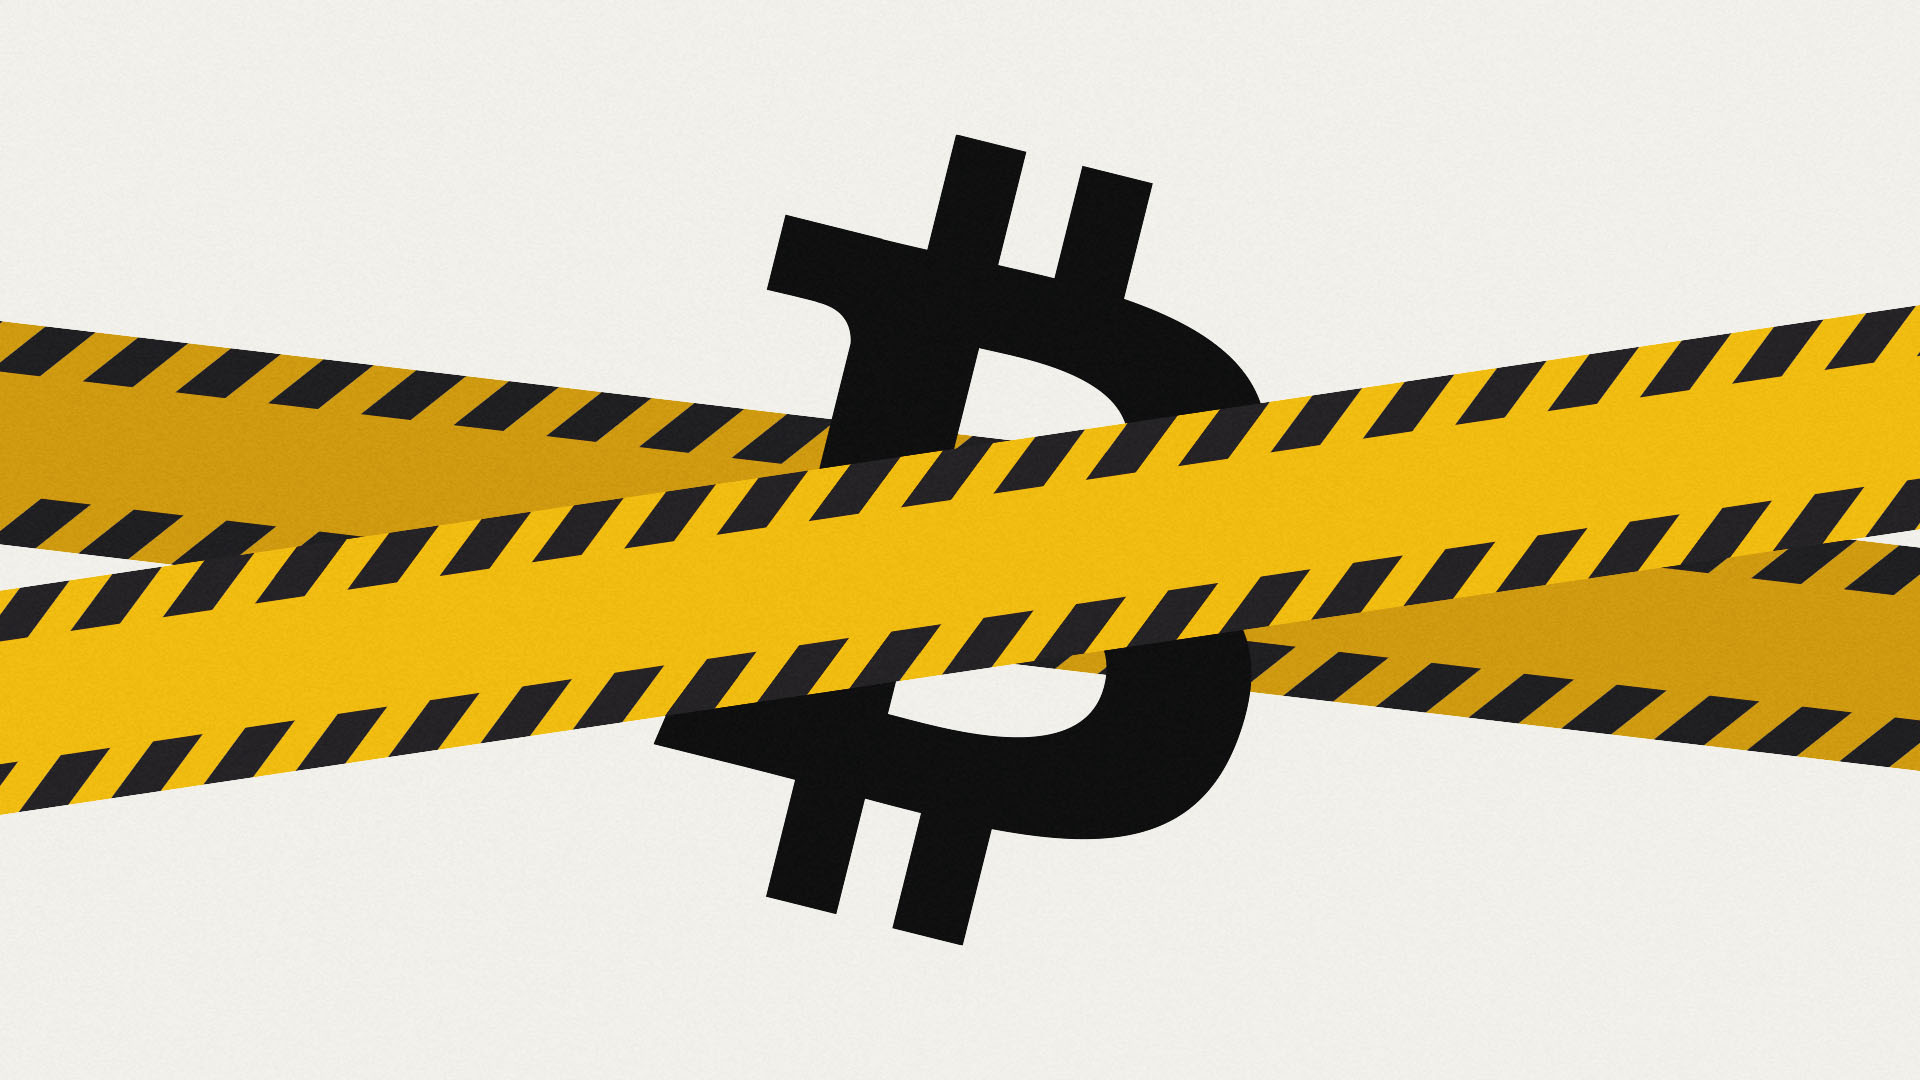 HSBC says no to Bitcoin-focused company like MicroStrategy, and the yellow tape in this image represents that sentiment.